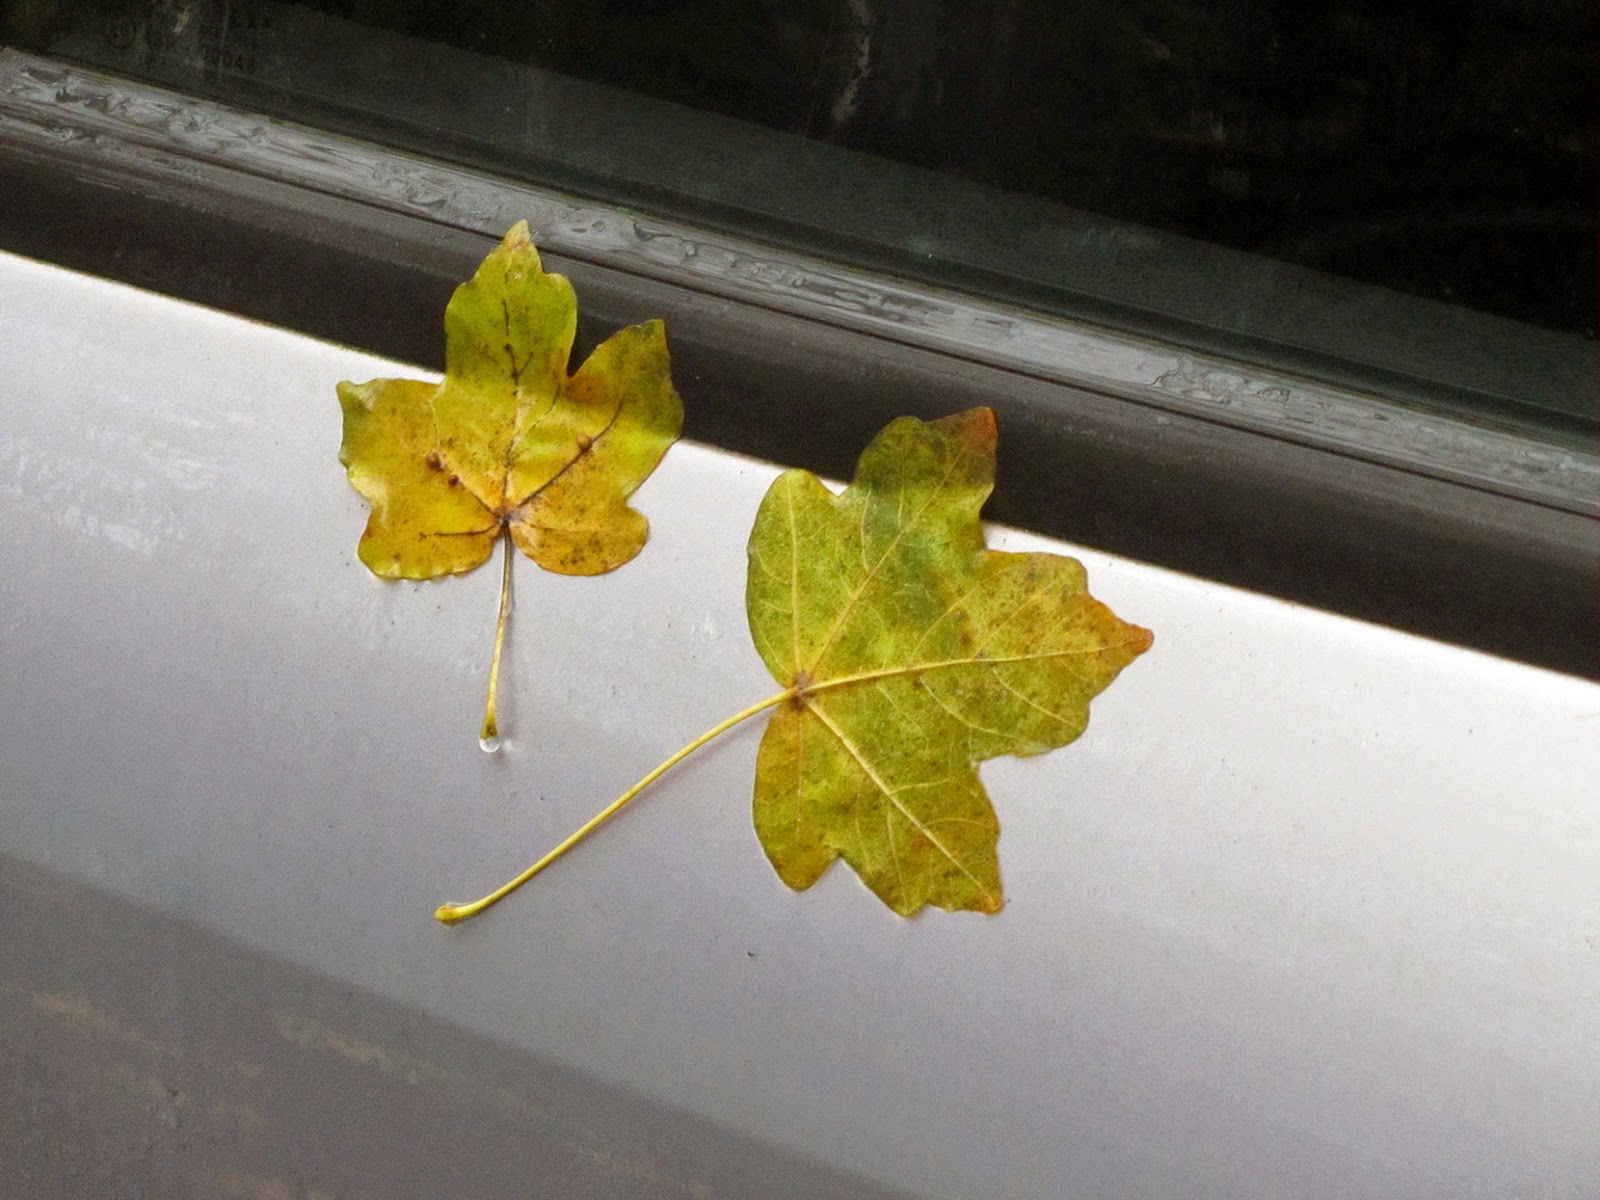 two leaves stuck on a silver car